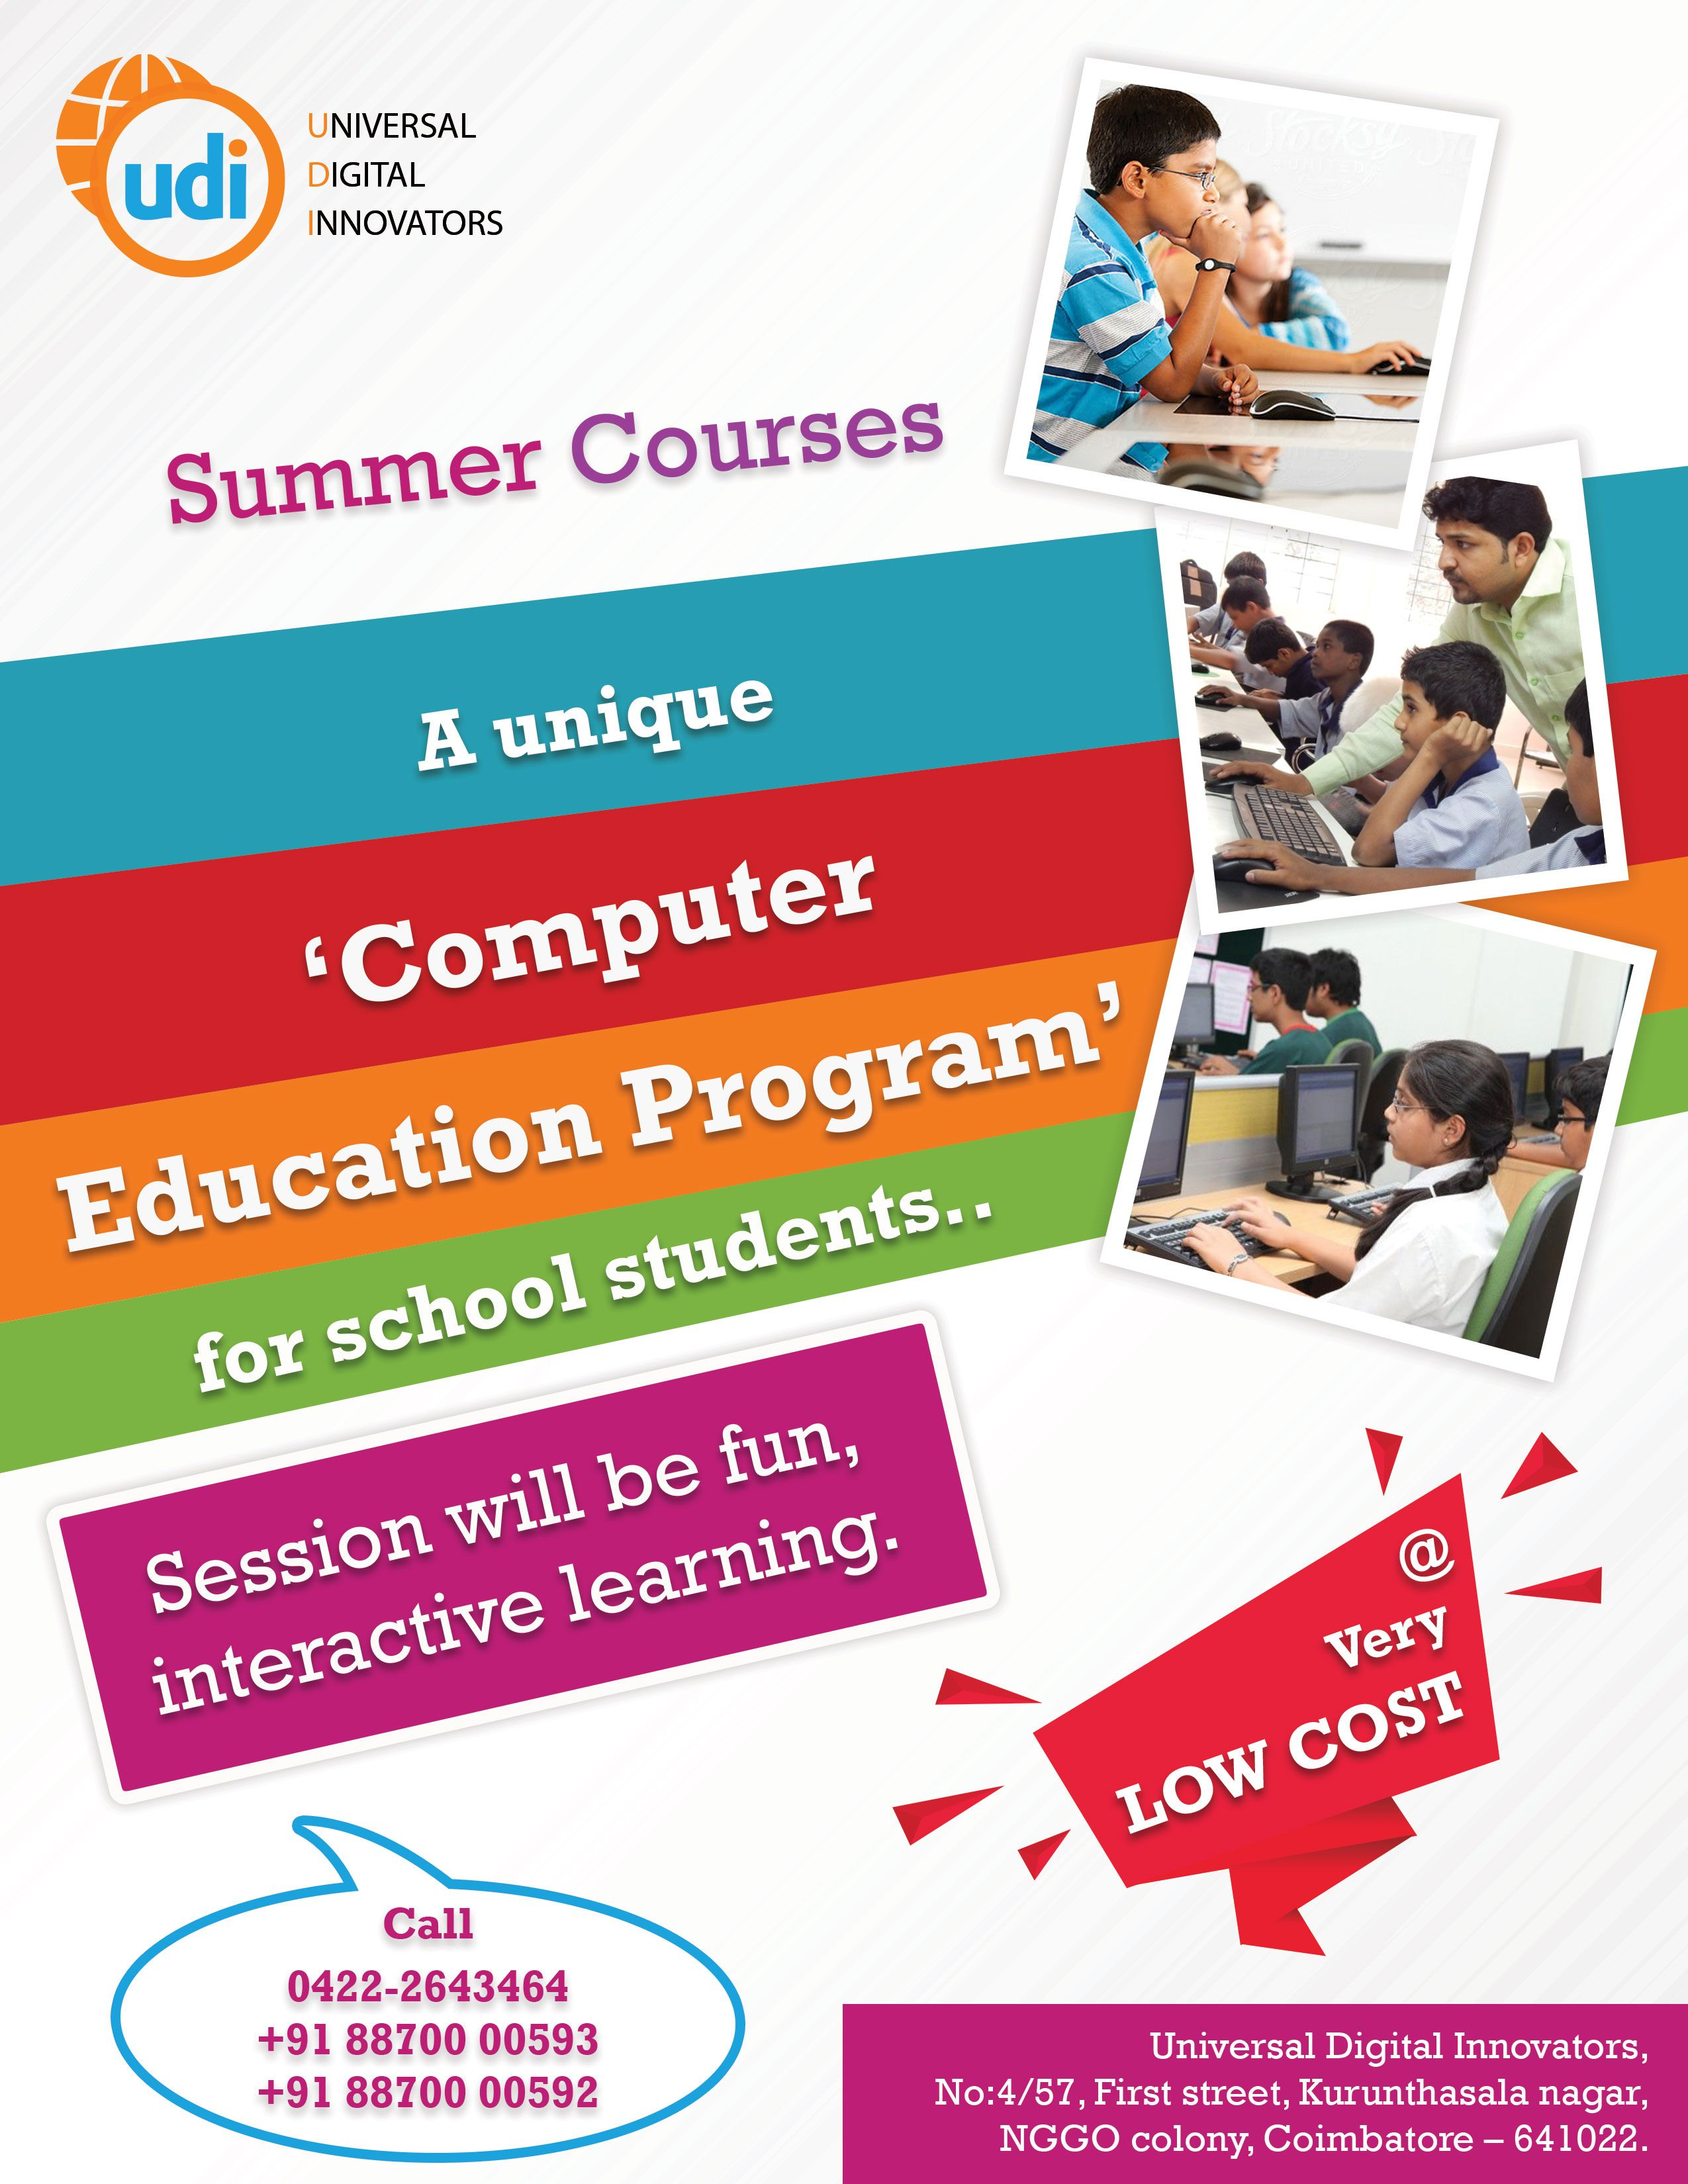 UDI Global - Summer computer education program offered at low cost